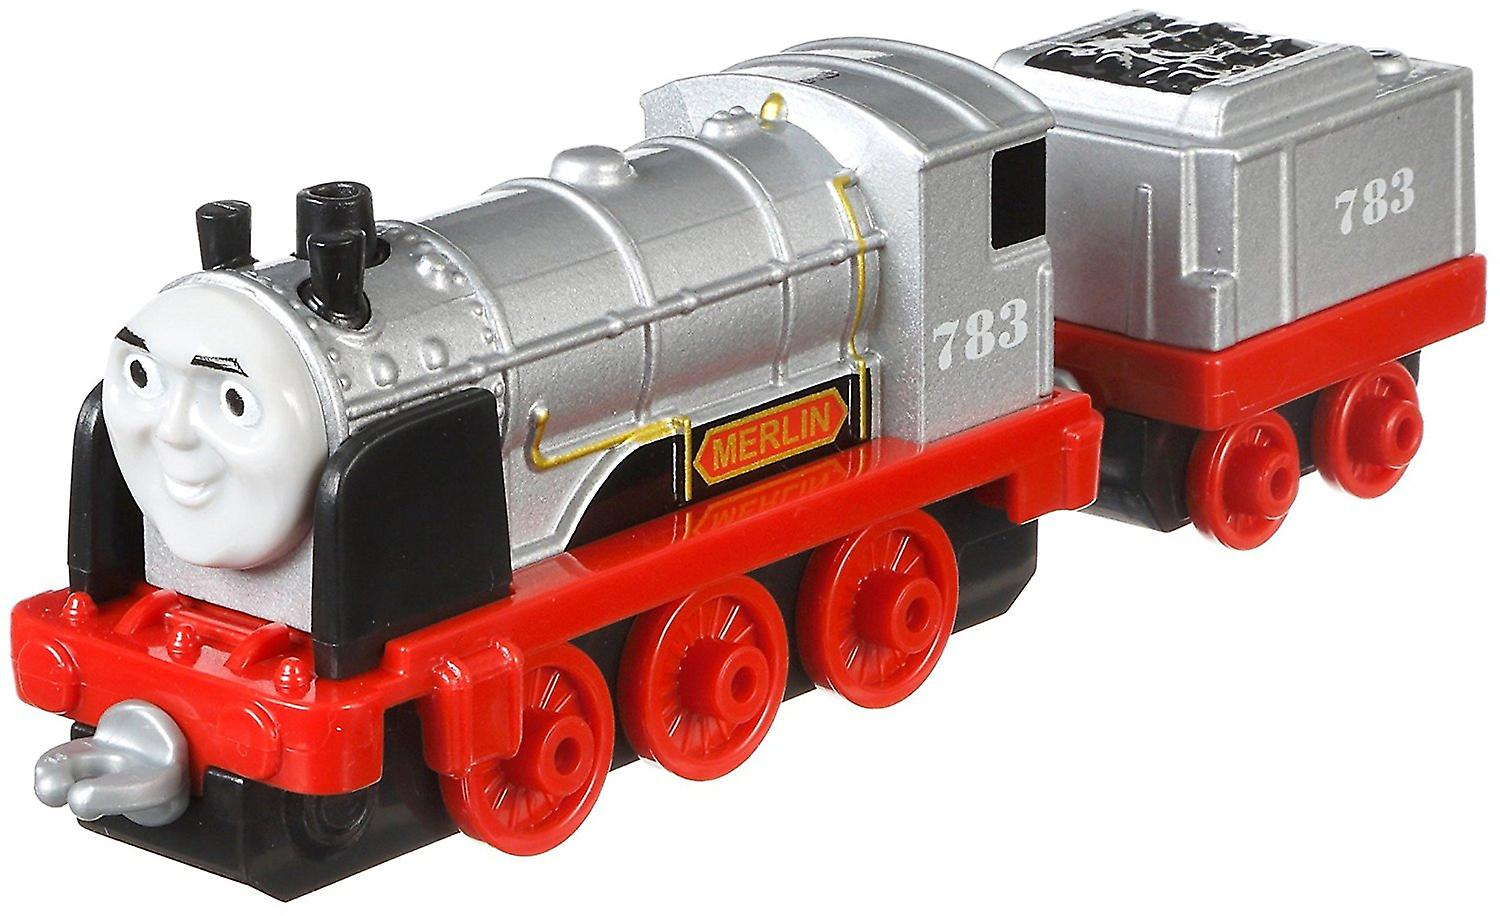 Thomas & Friends DXR59 Adventure Merlin The Invisible Engine